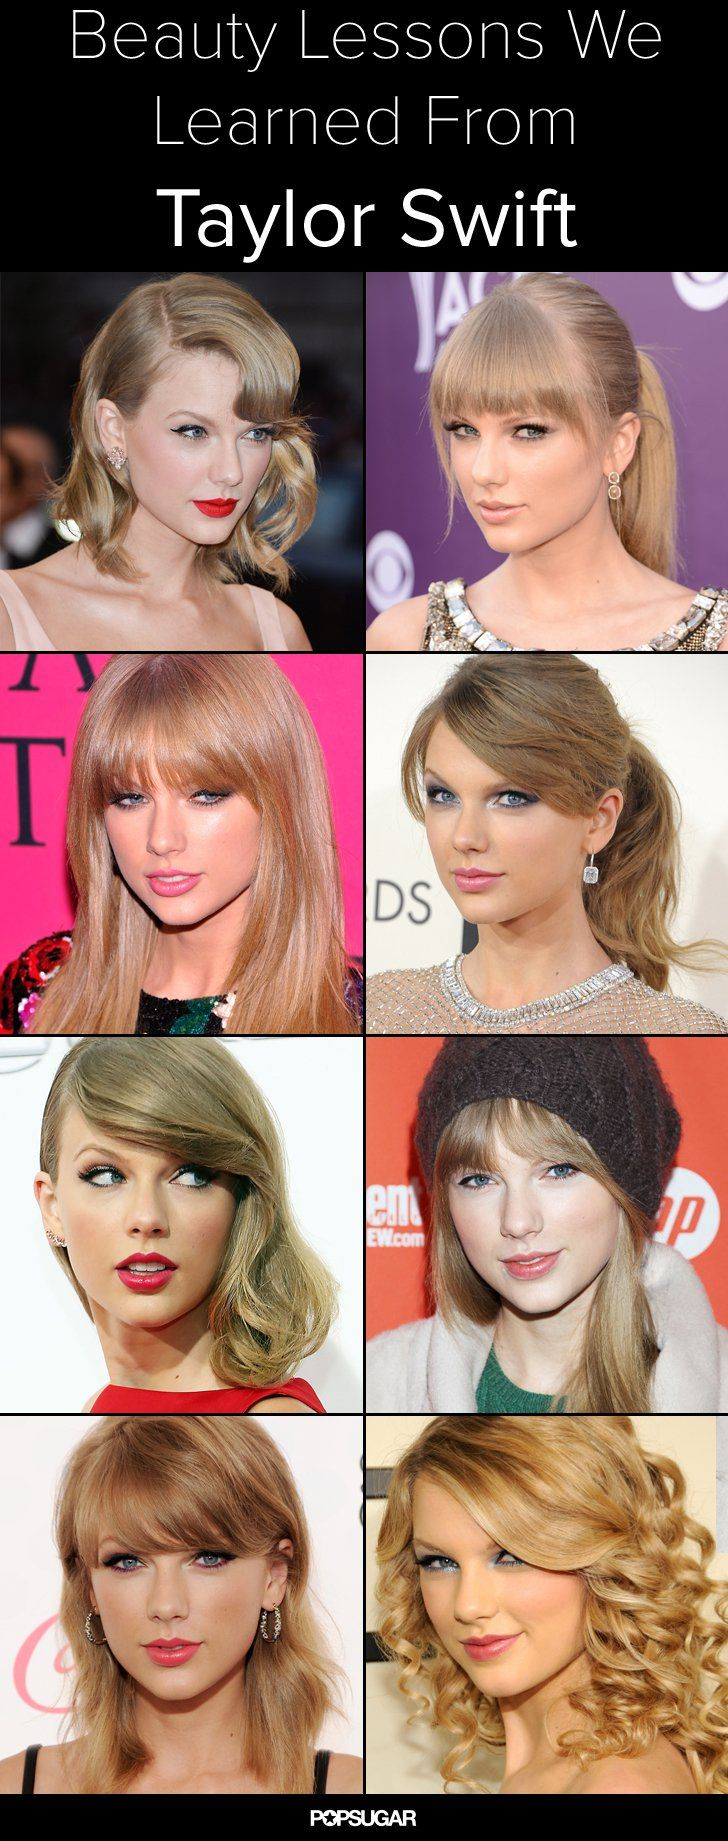 Pin for Later: 8 Ways to Look as Glamorous as Taylor Swift Every Day